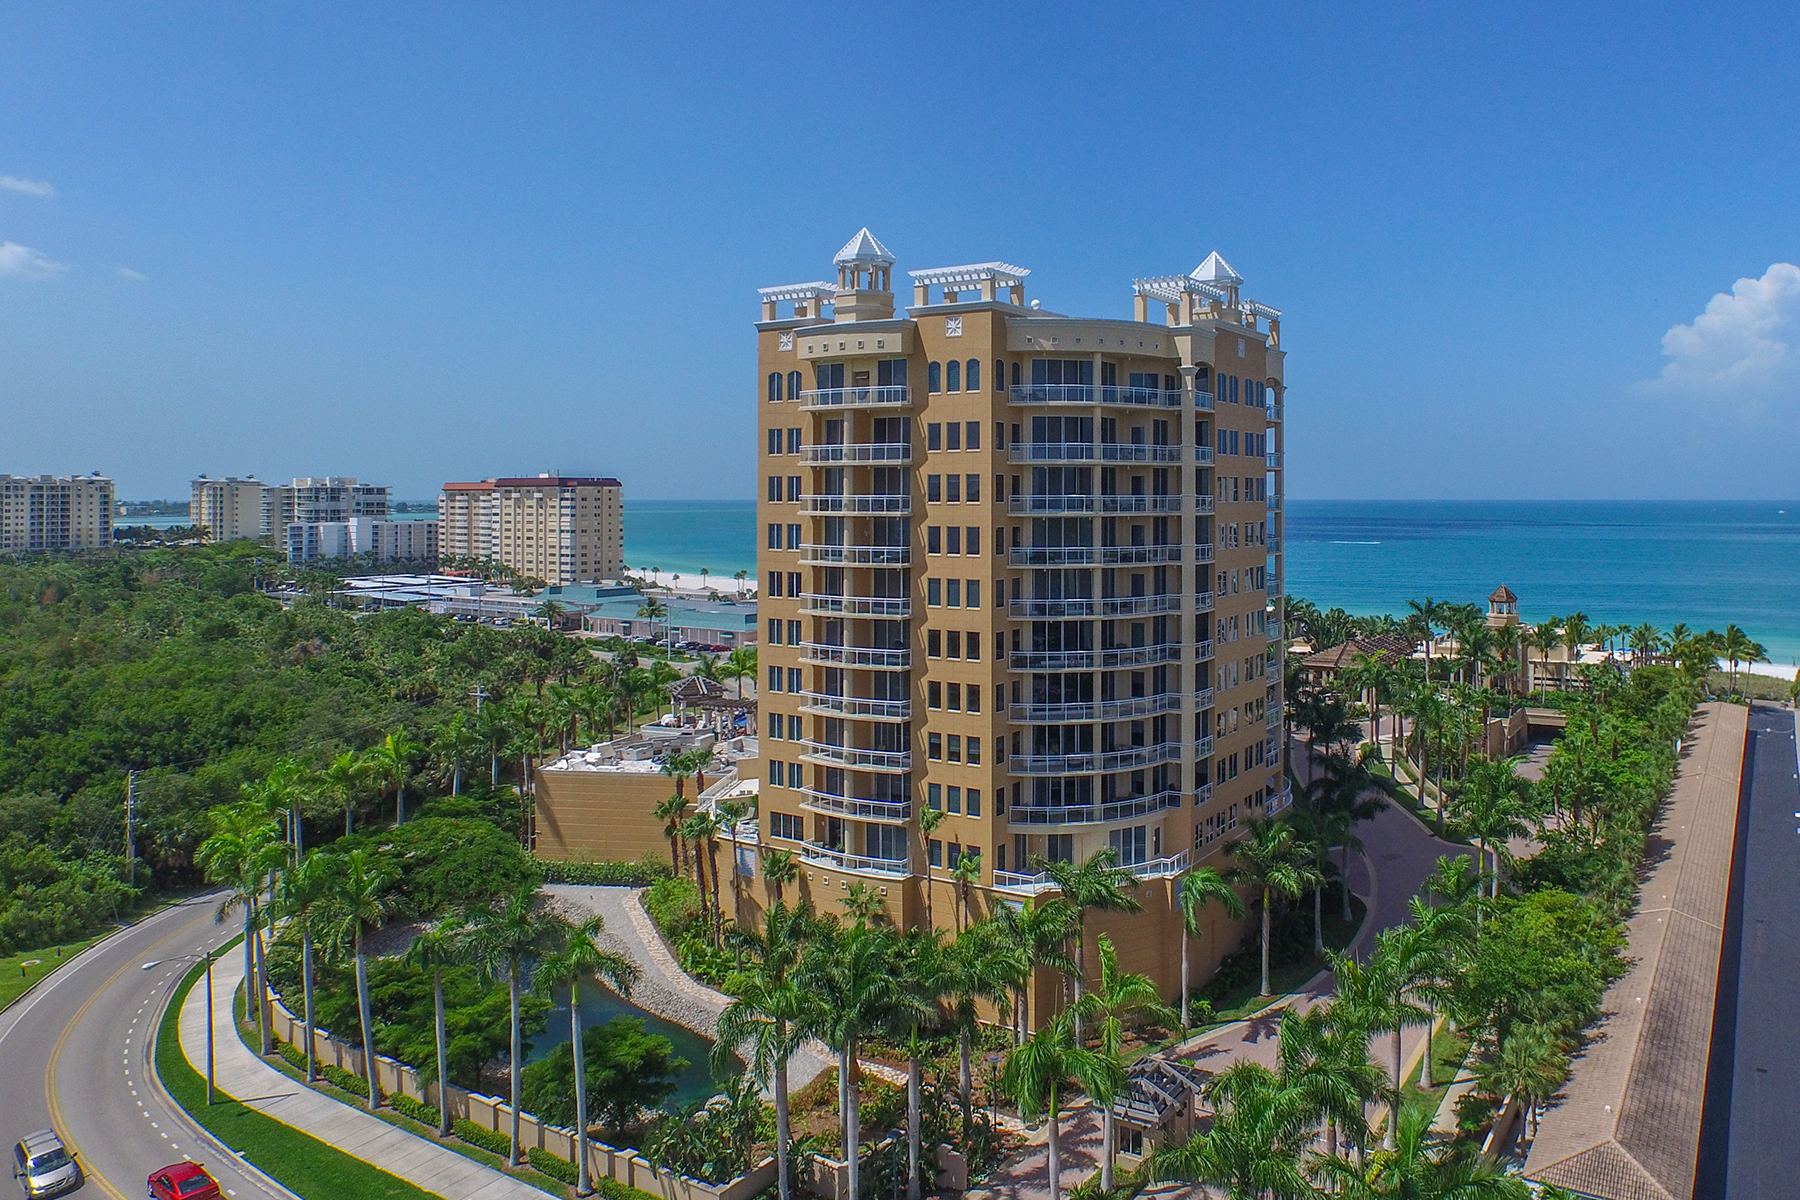 Condominium for Sale at RITZ BEACH RESIDENCES 1300 Benjamin Franklin Dr 1101 Sarasota, Florida 34236 United States